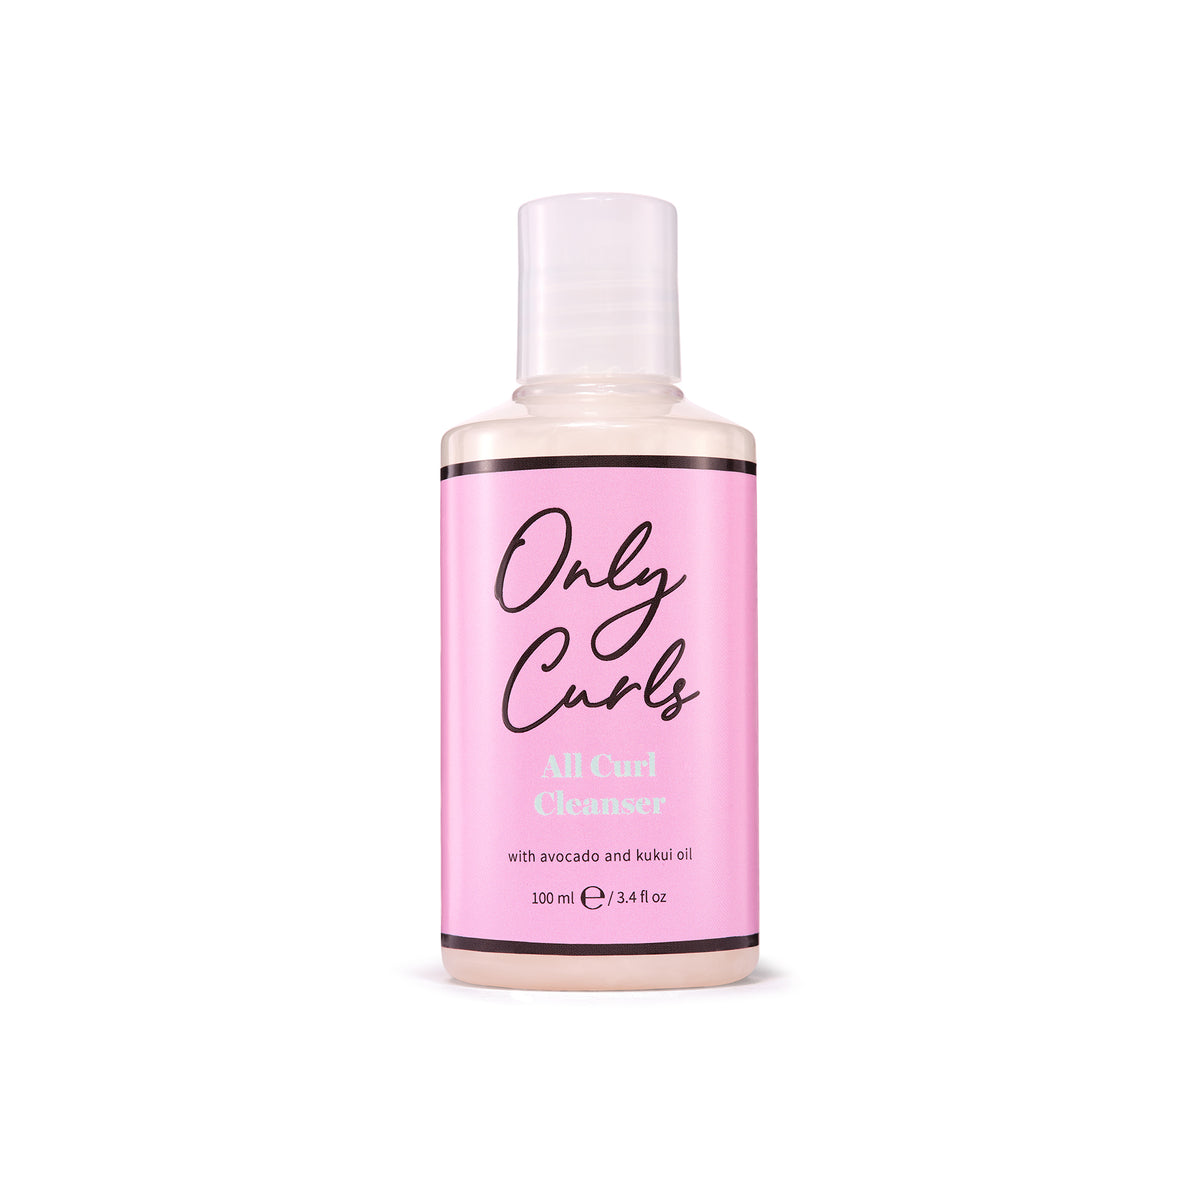 Only Curls All Curl Cleanser - Only Curls